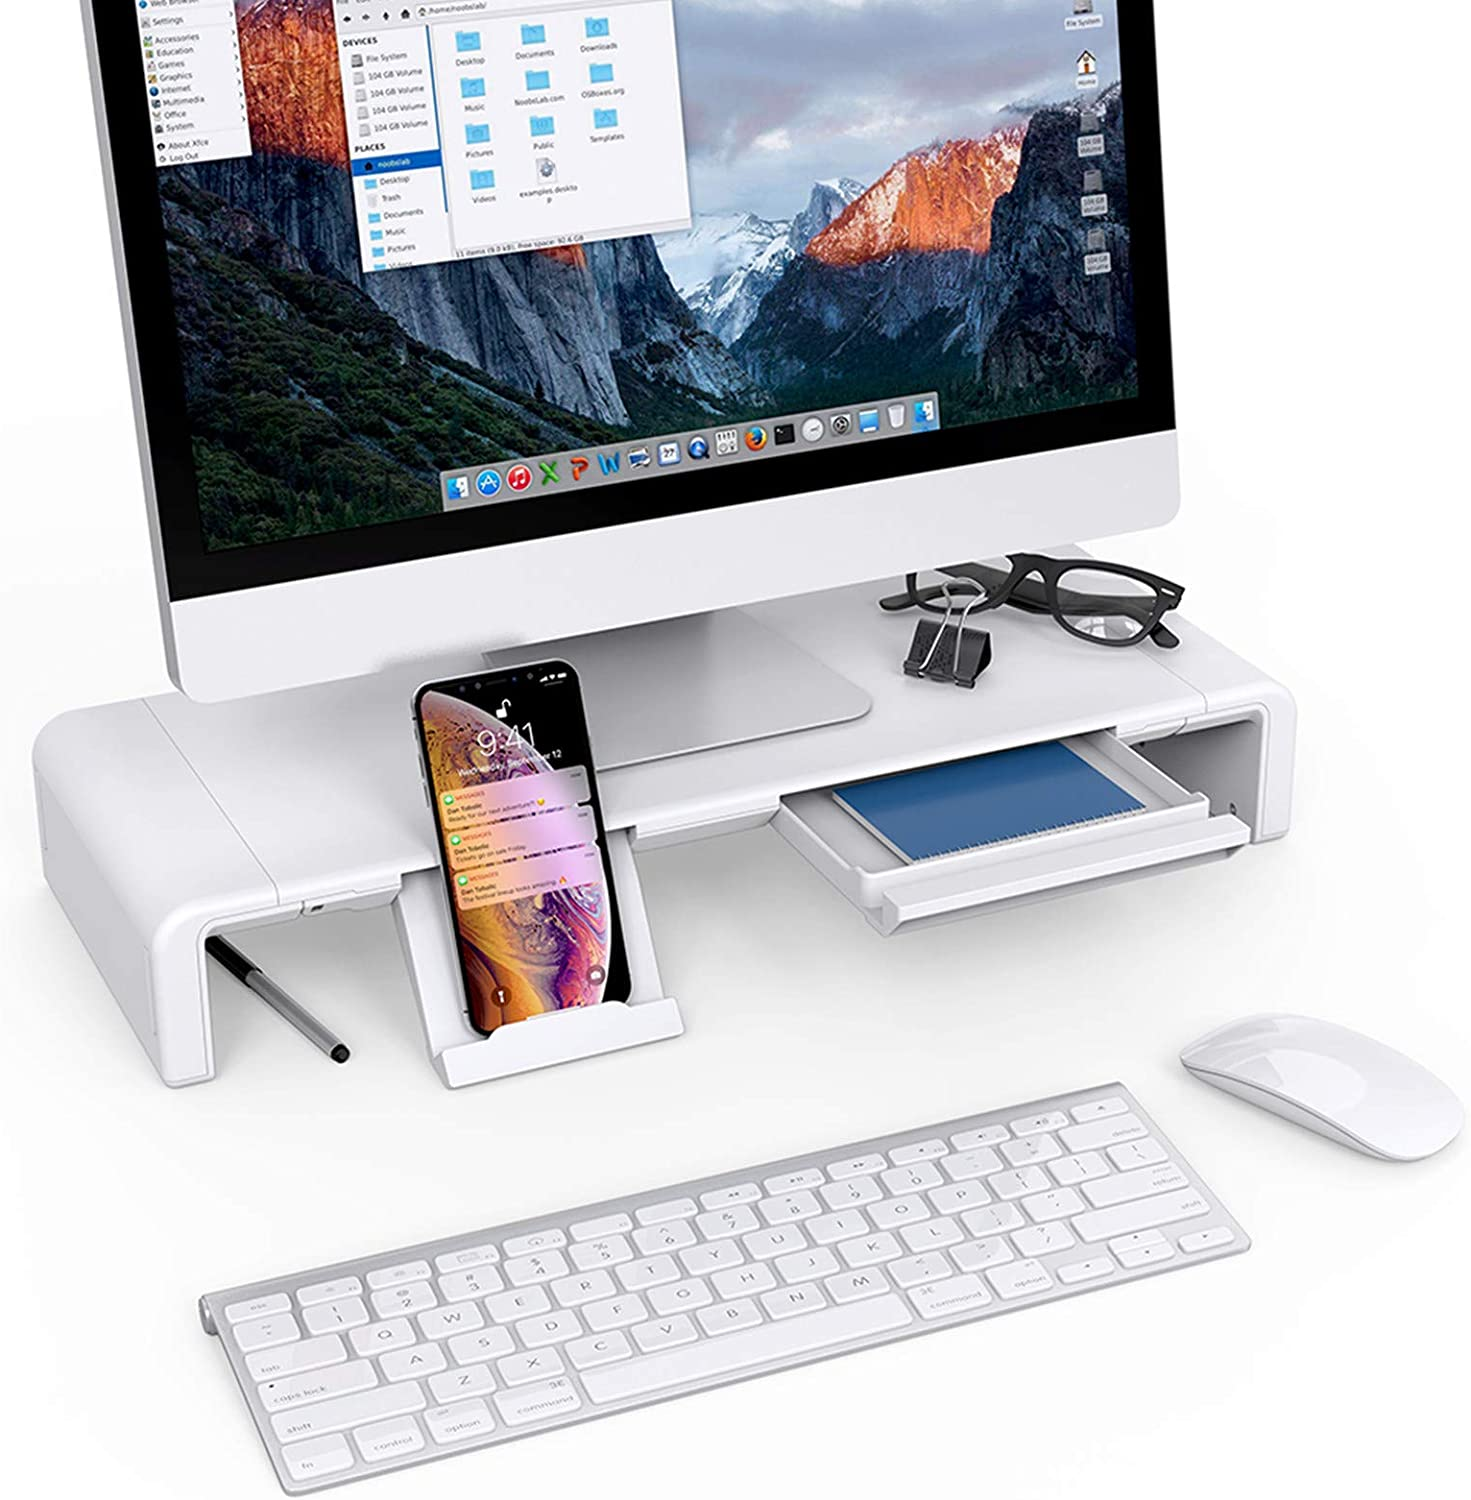 Monitor Stand Riser, Klearlook Maximized Clarity Foldable Computer Monitor Stand, Adjustable Computer Stand Desk Organizer with Storage Drawer, Tablet Phone Stand for Laptop PC Printer (White)